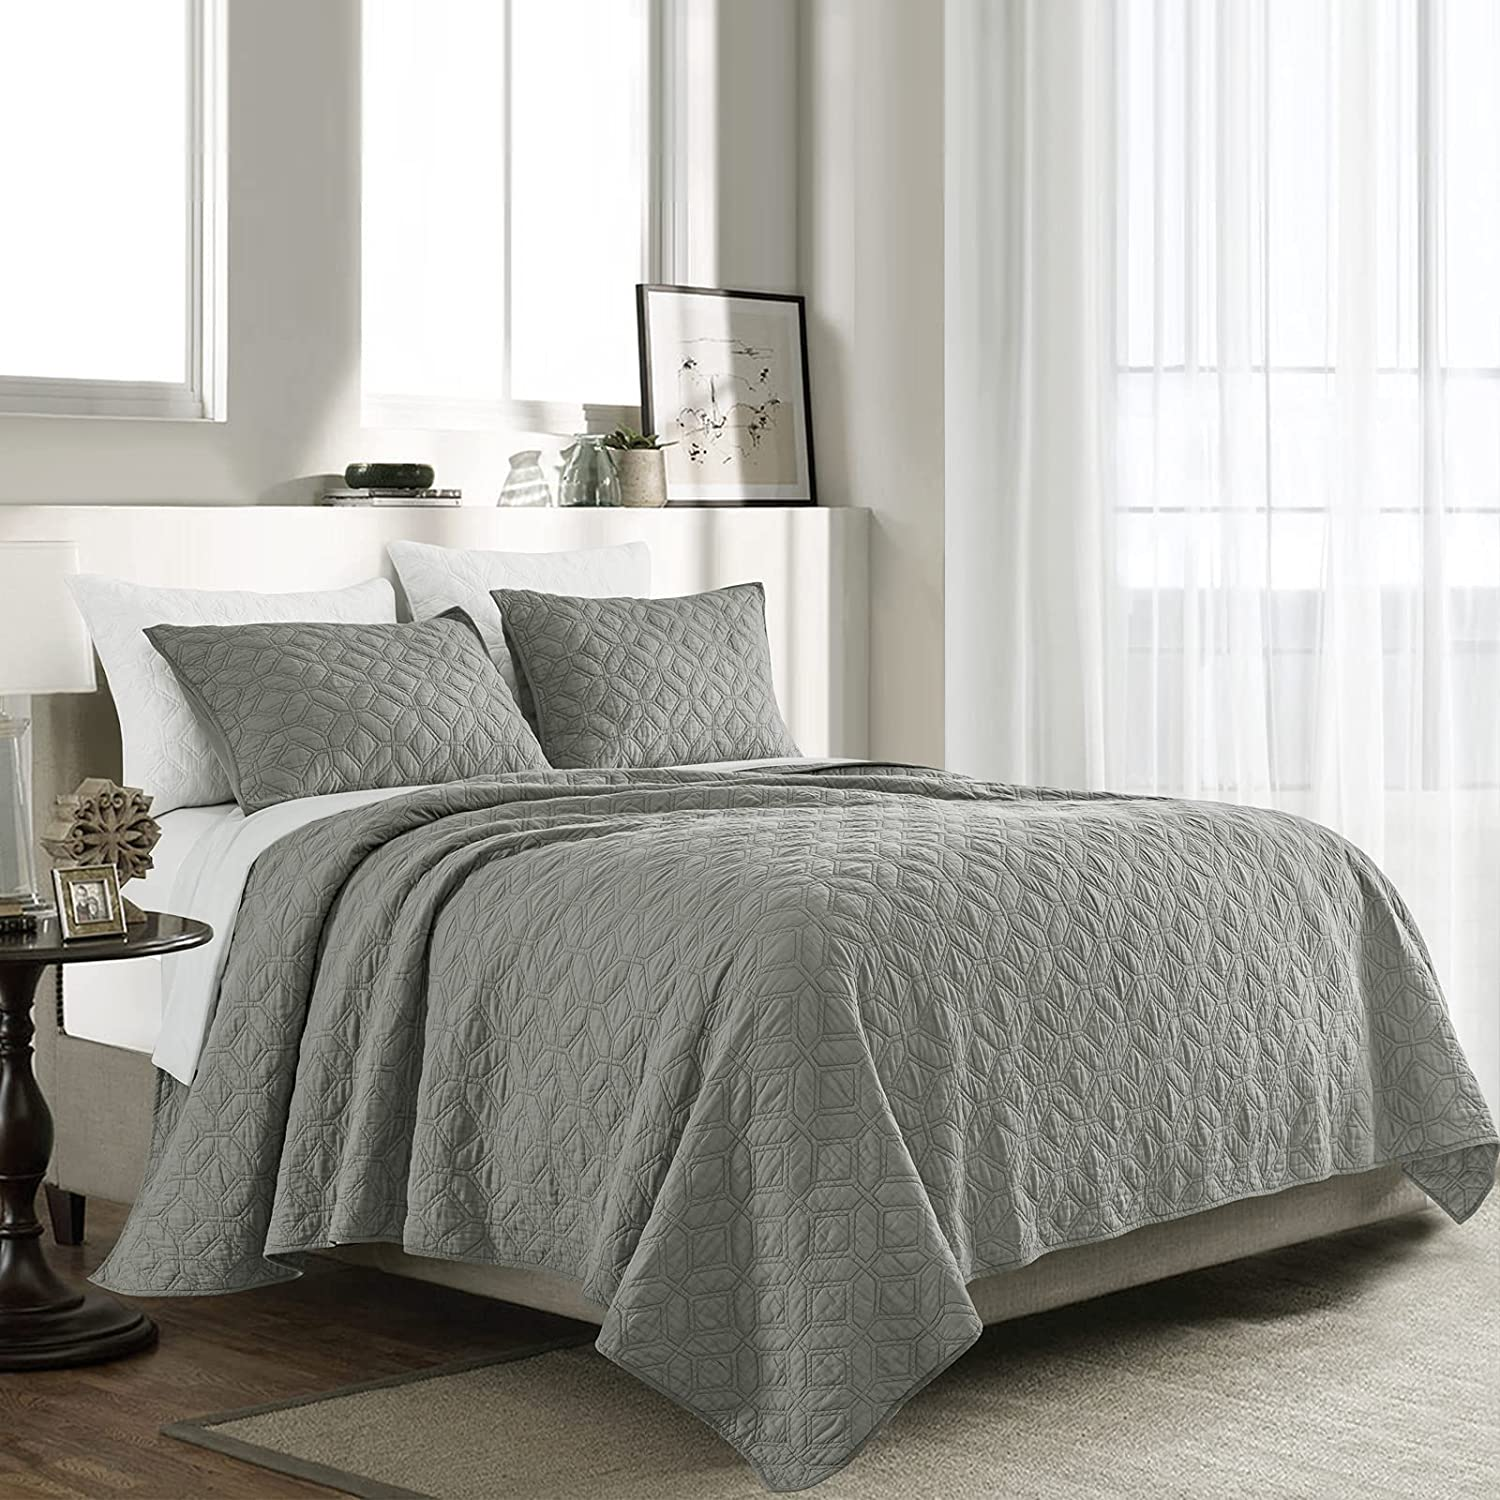 SHALALA NEW YORK Cotton Voile Quilt Set Shams U Ranking TOP9 - Sales of SALE items from new works 2 Quilted with